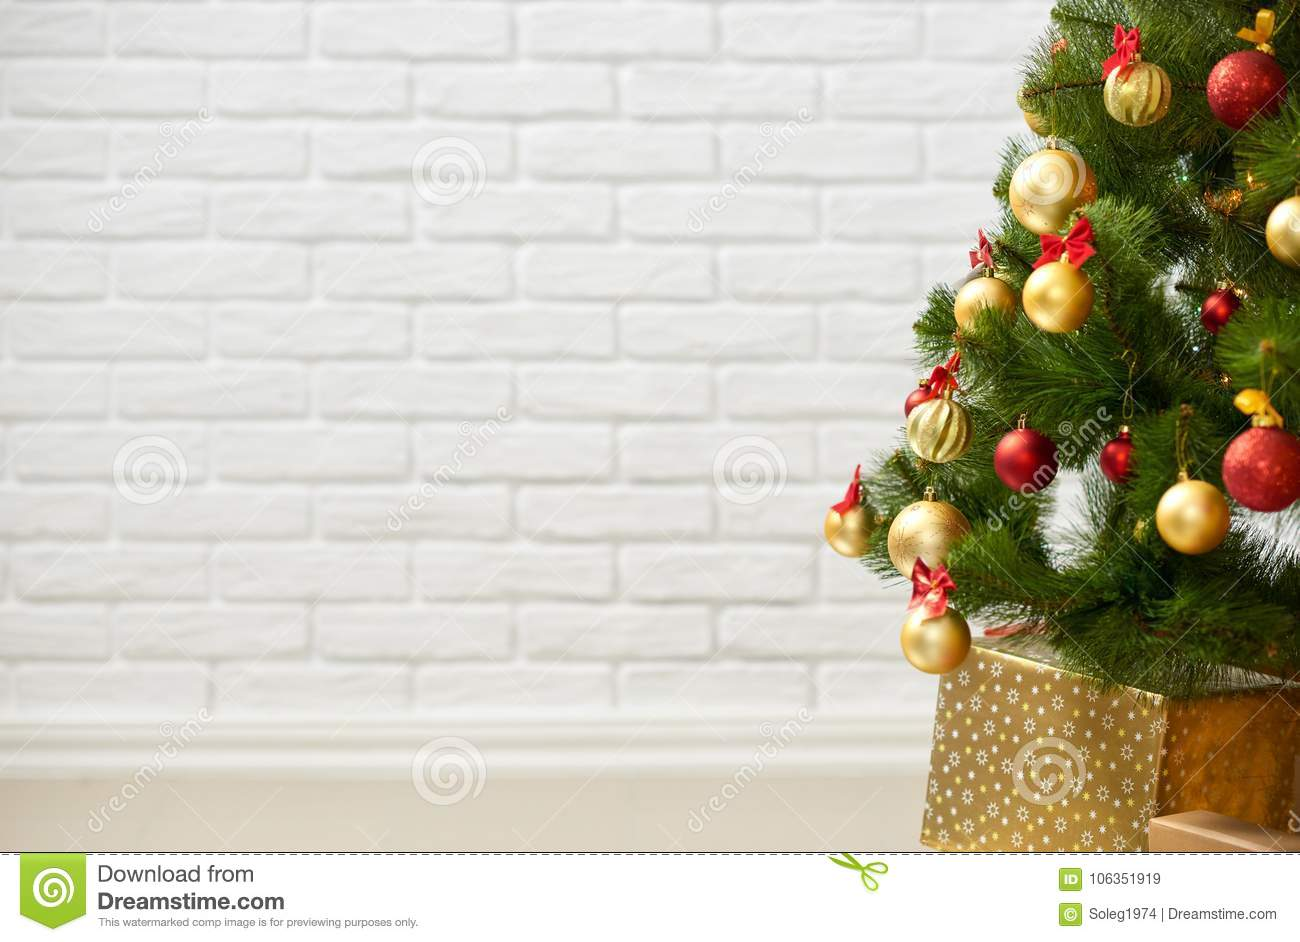 18 676 Christmas Tree Wall White Photos Free Royalty Free Stock Photos From Dreamstime